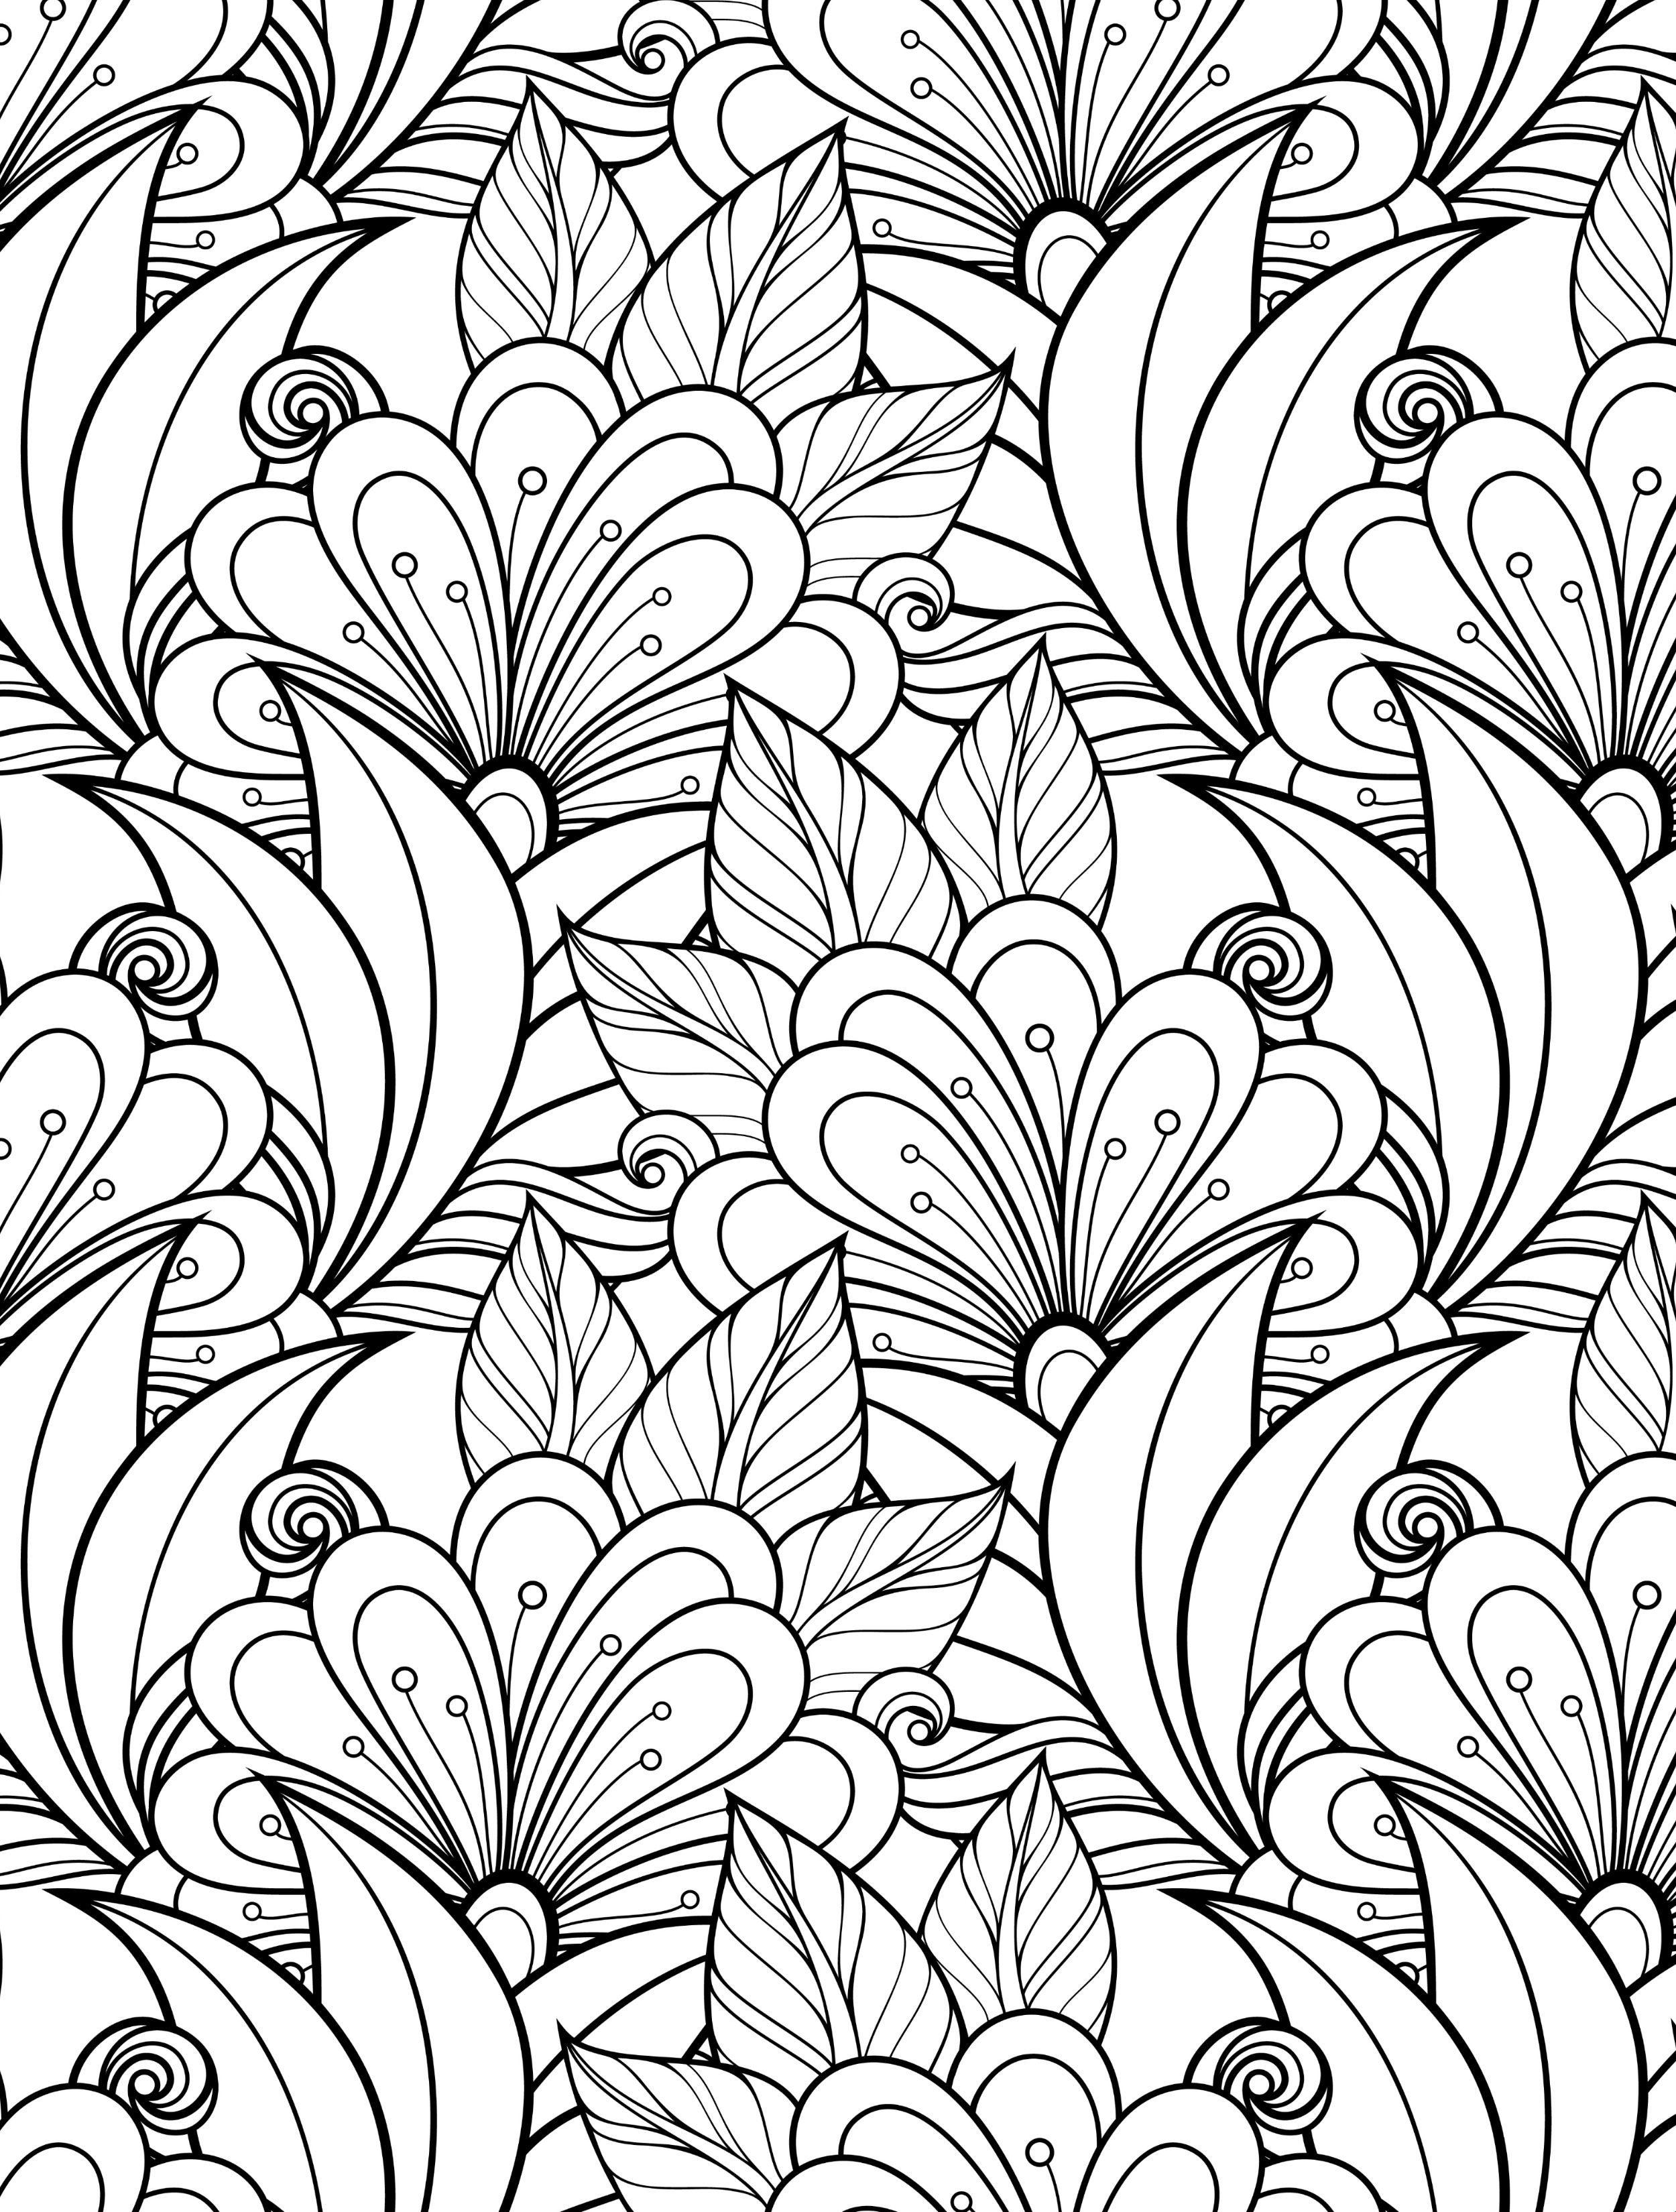 coloring printables 10 toothy adult coloring pages printable off the cusp coloring printables